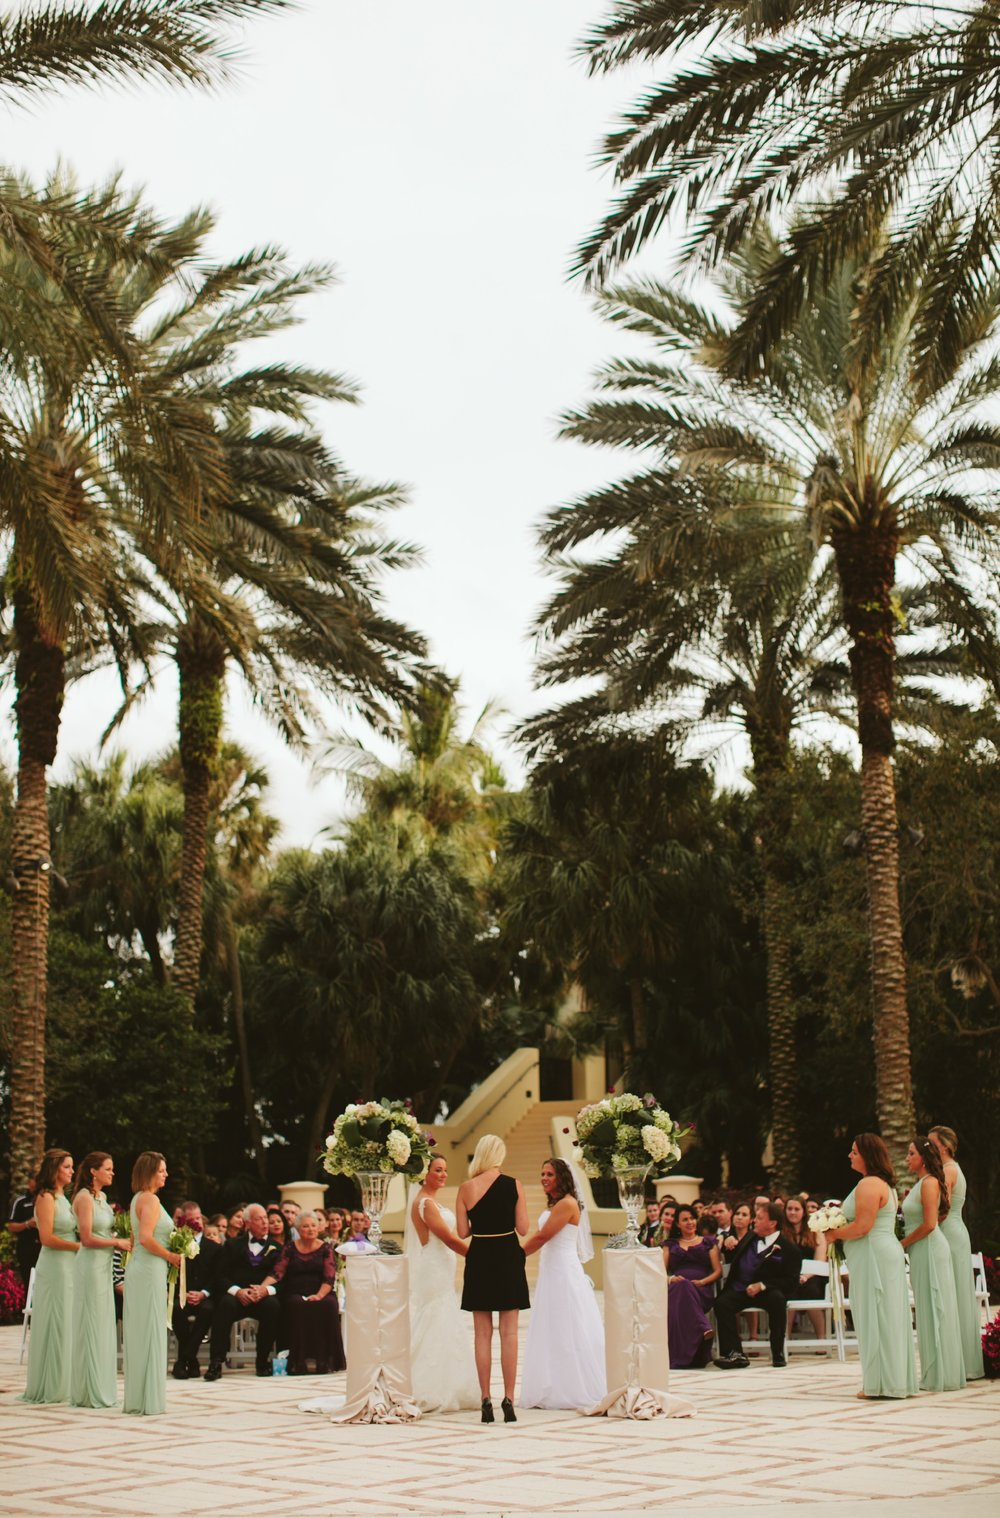 Kim + Monica's Mizner Country Club Wedding in Delray Beach56.jpg